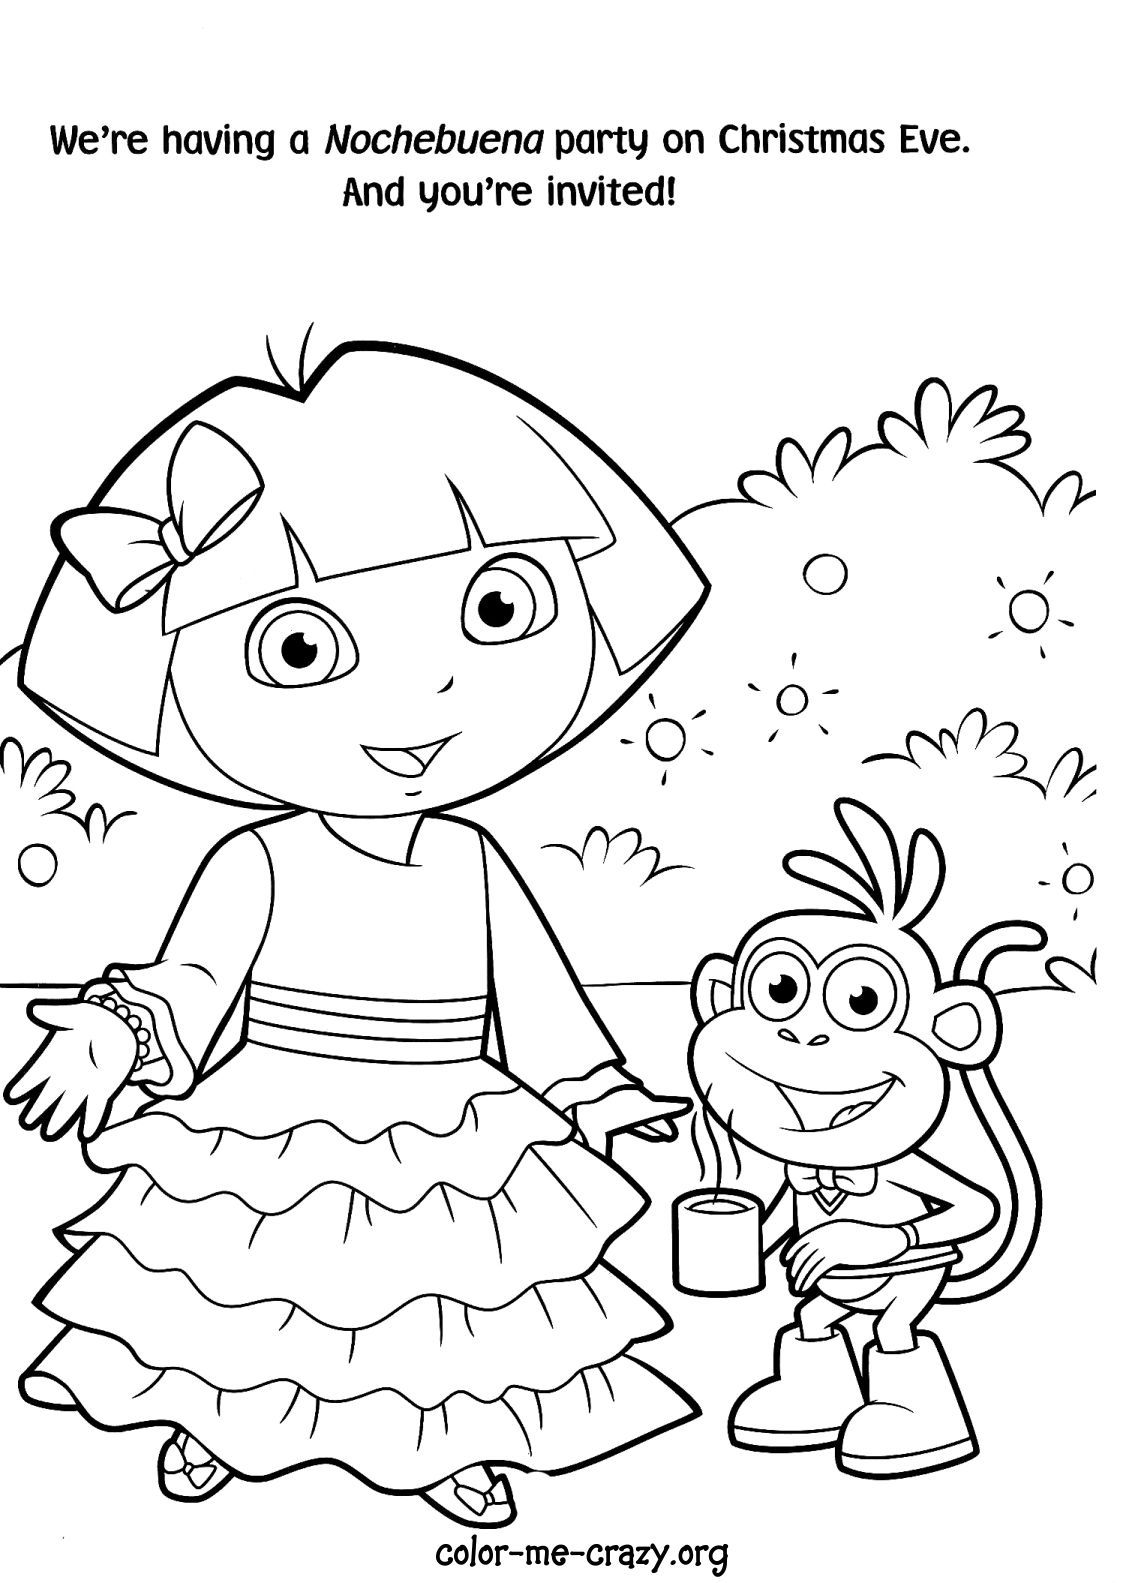 Cool Dora Coloring Pages Page 1 Top Markotop Coloring Pages For